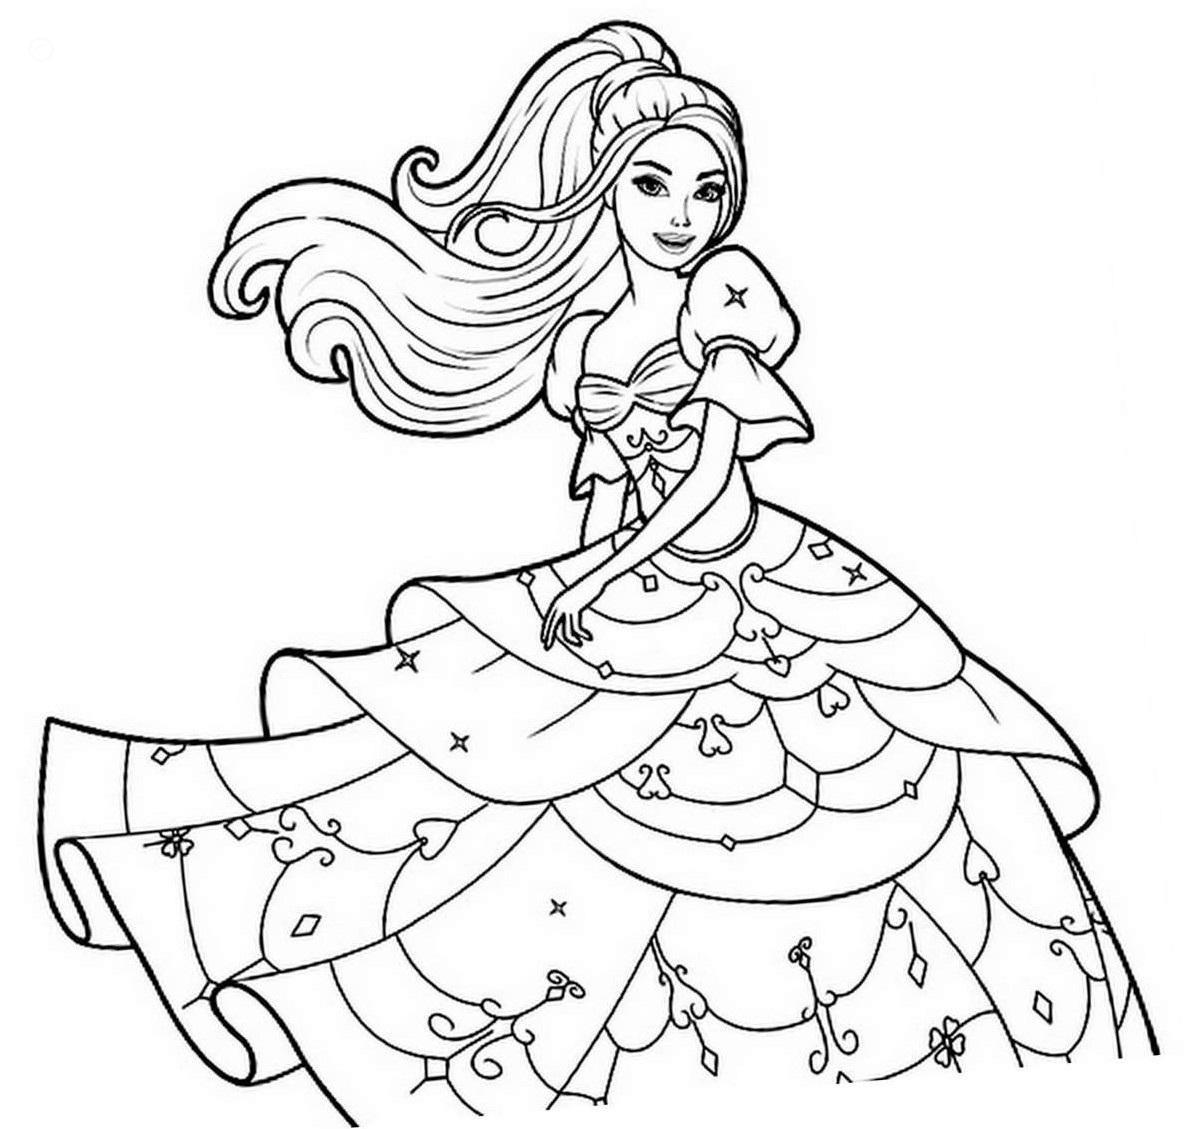 barbie coloring book coloring pages barbie free printable coloring pages book coloring barbie 1 1